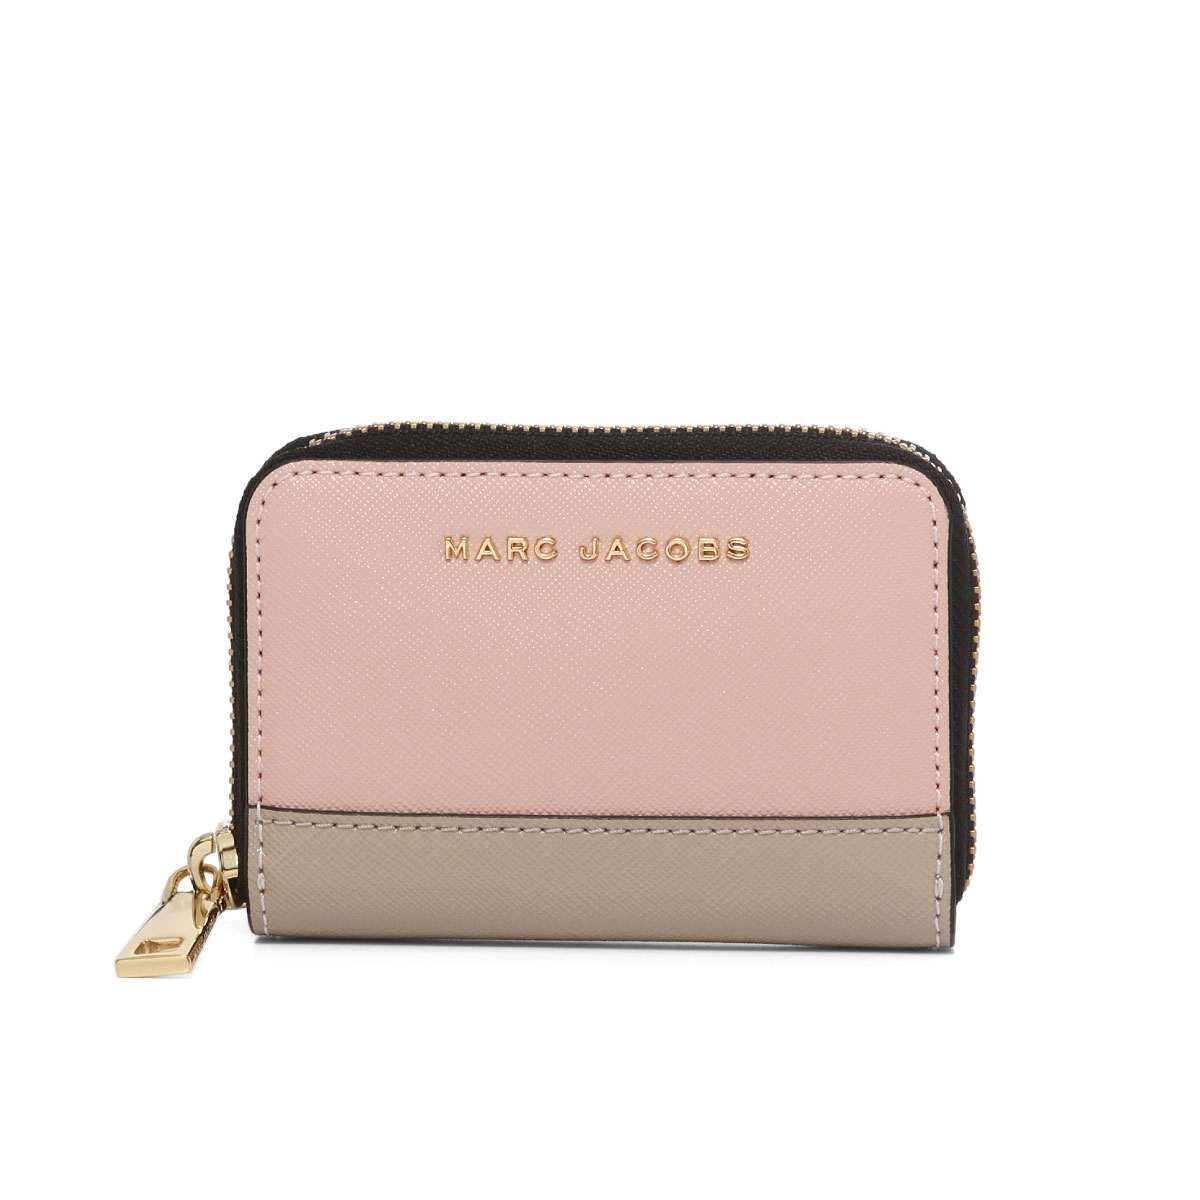 6fbfaa8d47be SAFFIANO METAL LETTERS STANDARD CONTINENTAL WALLET [サフィアノ メタルレター] MARC  JACOBS マークジェイコブス 財布 ラウンドファスナー ...